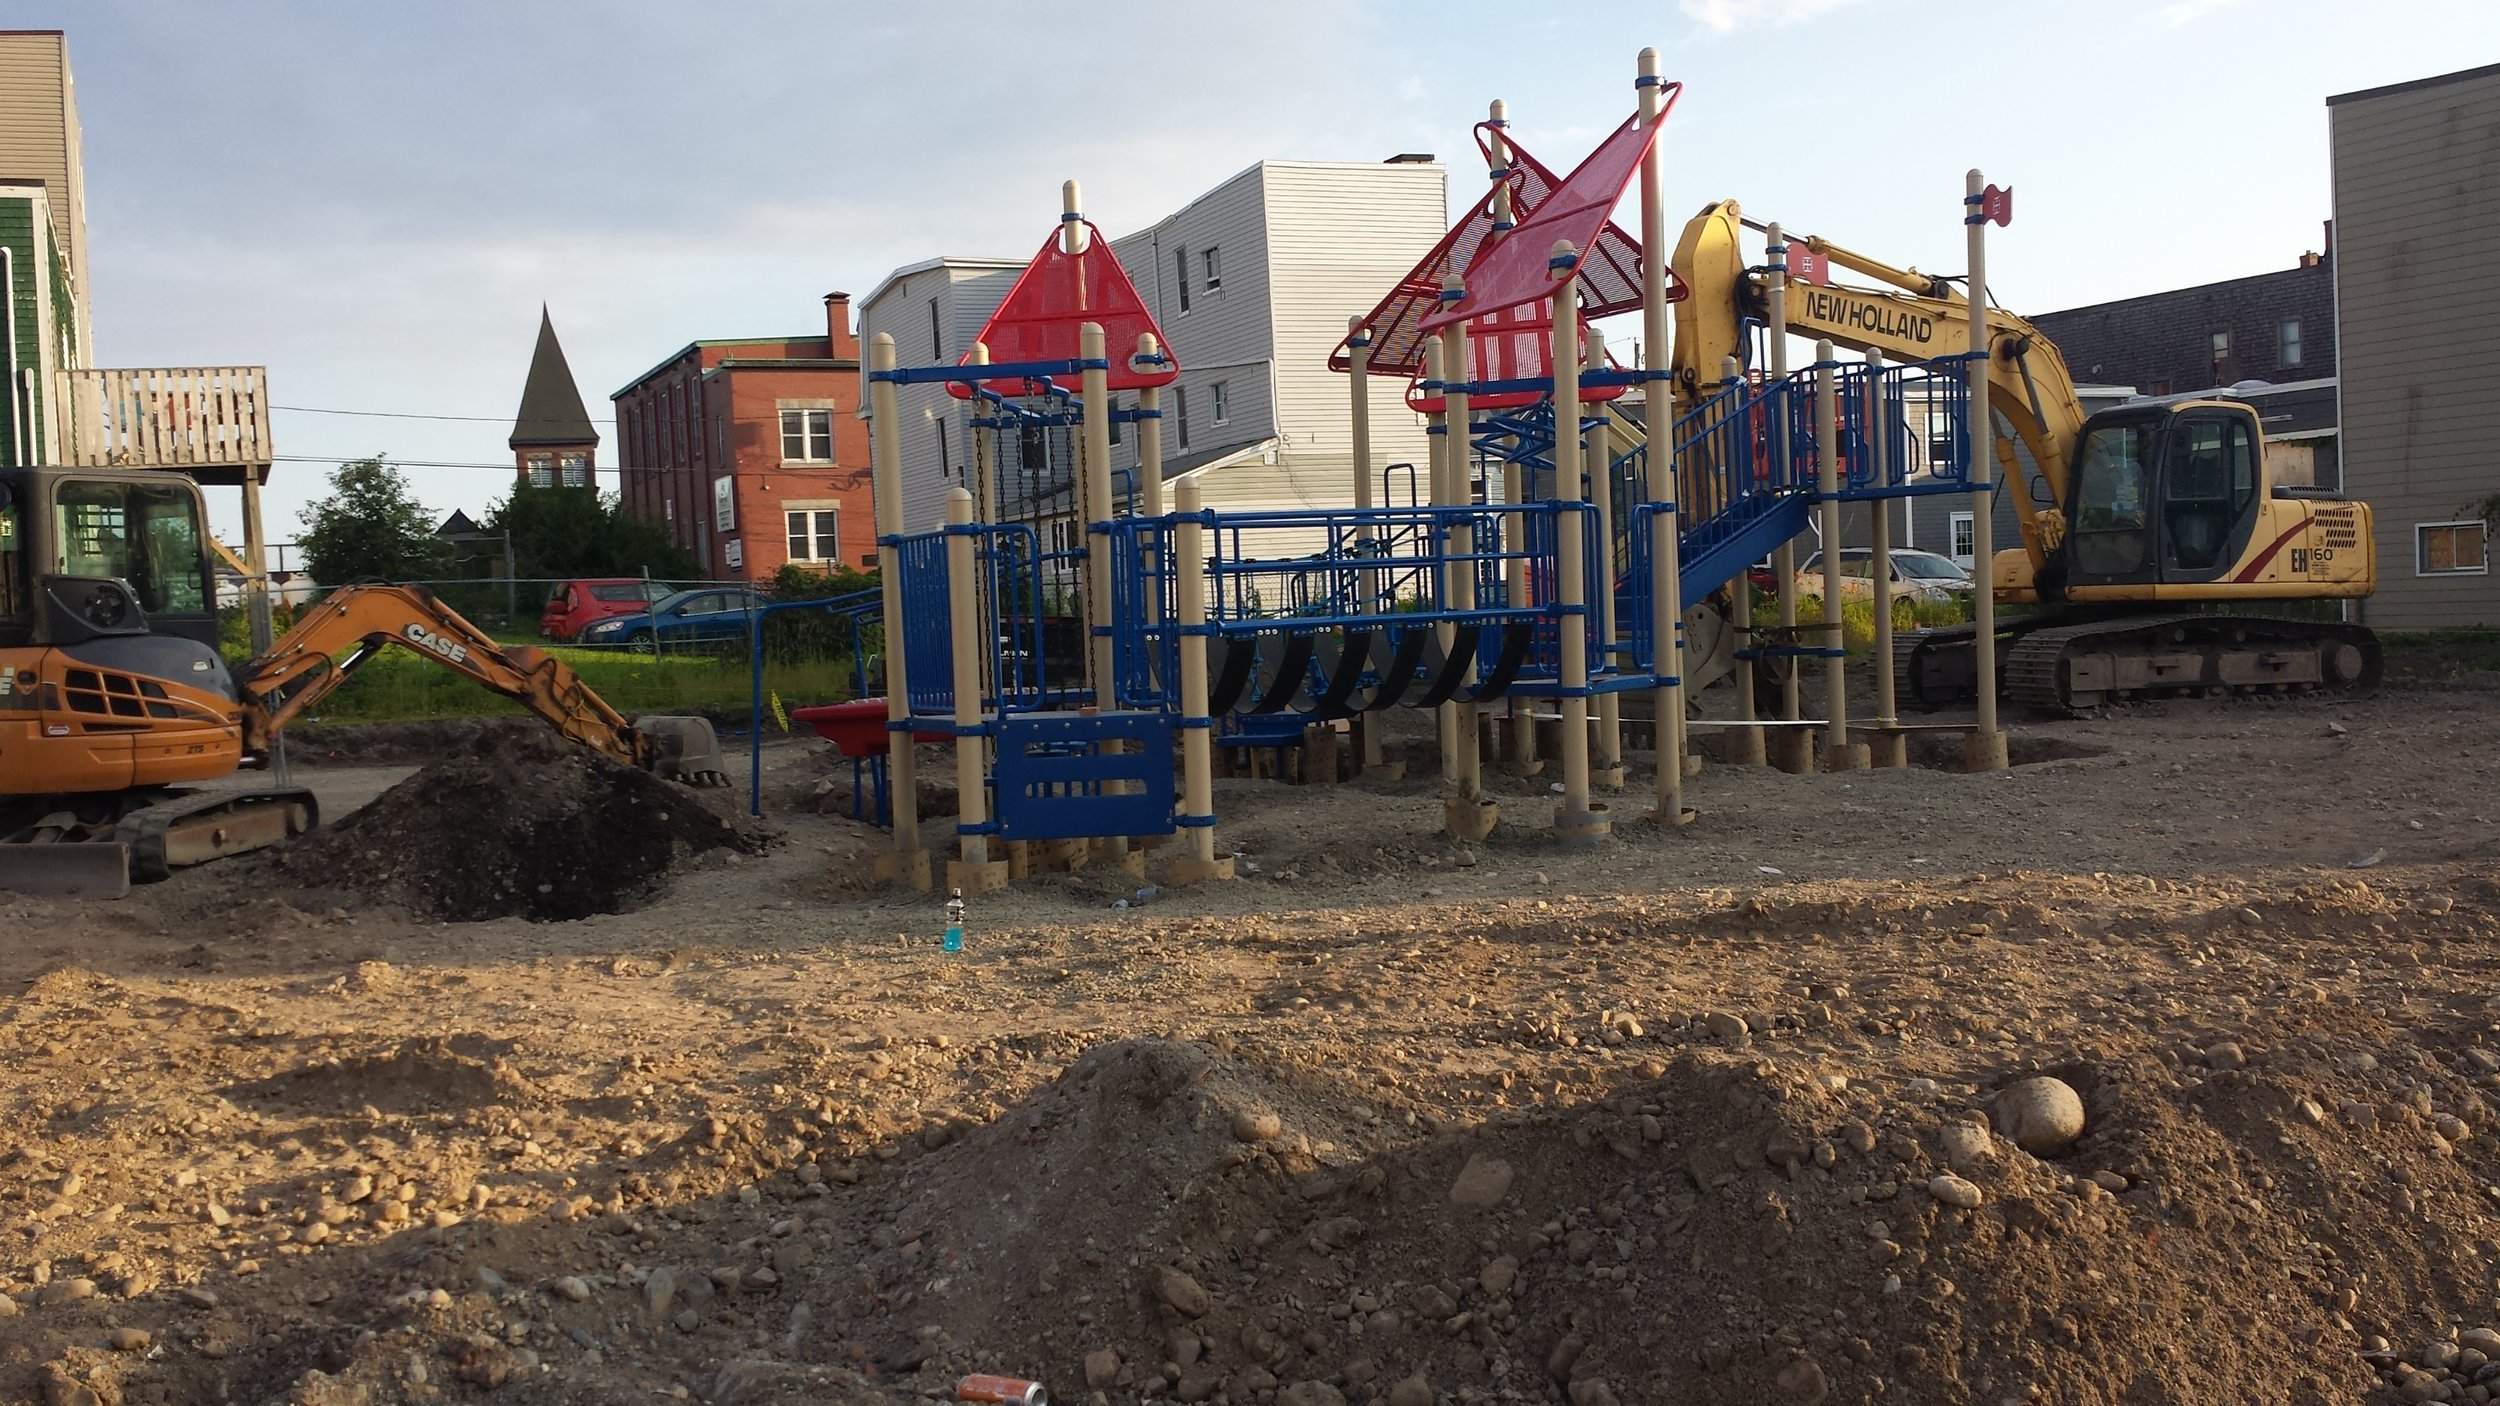 The playpark on July 18, 2017. You can see the steeple of the RiverCross Mission in the background.